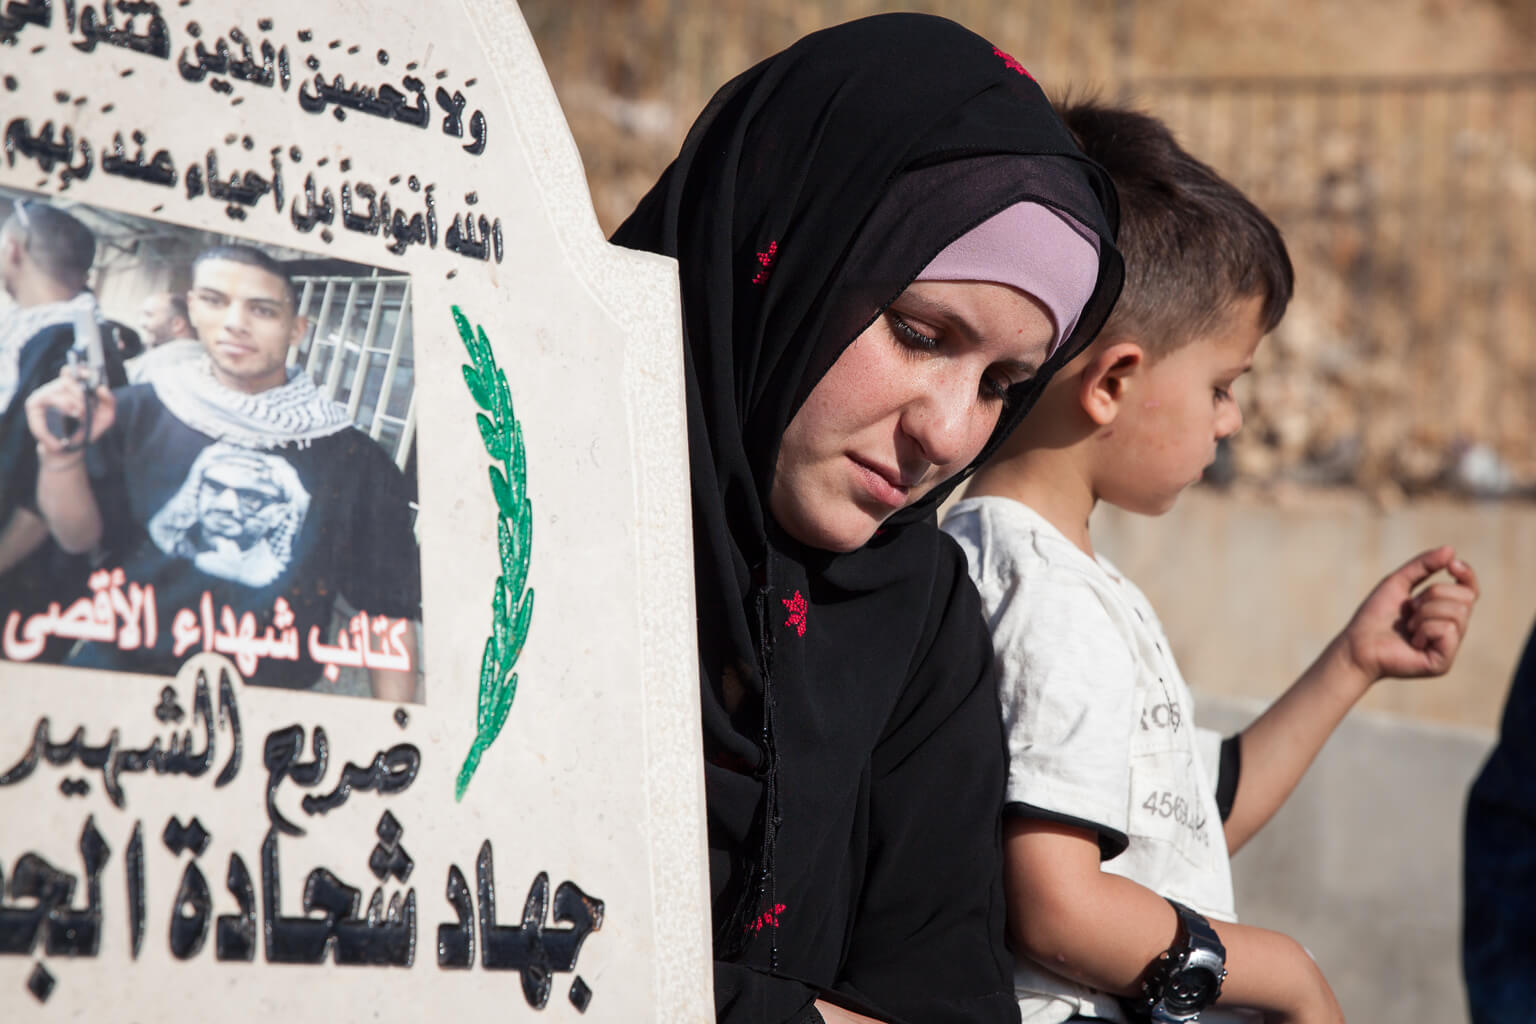 Roula Al-Jafari and her son visit the grave of her husband's cousin, Jihad Al-Jafari.  Jihad, age 20, is the most recent person to be buried at the Martyr's Cemetery. In the early morning hours of February 24, 2015, the Israeli military entered Dheishe Refugee Camp and its residents responded by throwing stones and molotov cocktails.  An Israeli soldier was lightly injured, the army began firing live ammunition at the protestors, and Jihad was shot in the chest. Witnesses reported that the Israeli army prevented rescuers and an ambulance from reaching Jihad, and that he laid on the roof of his home, bleeding, for over an hour. (Photo: Rebecca George)